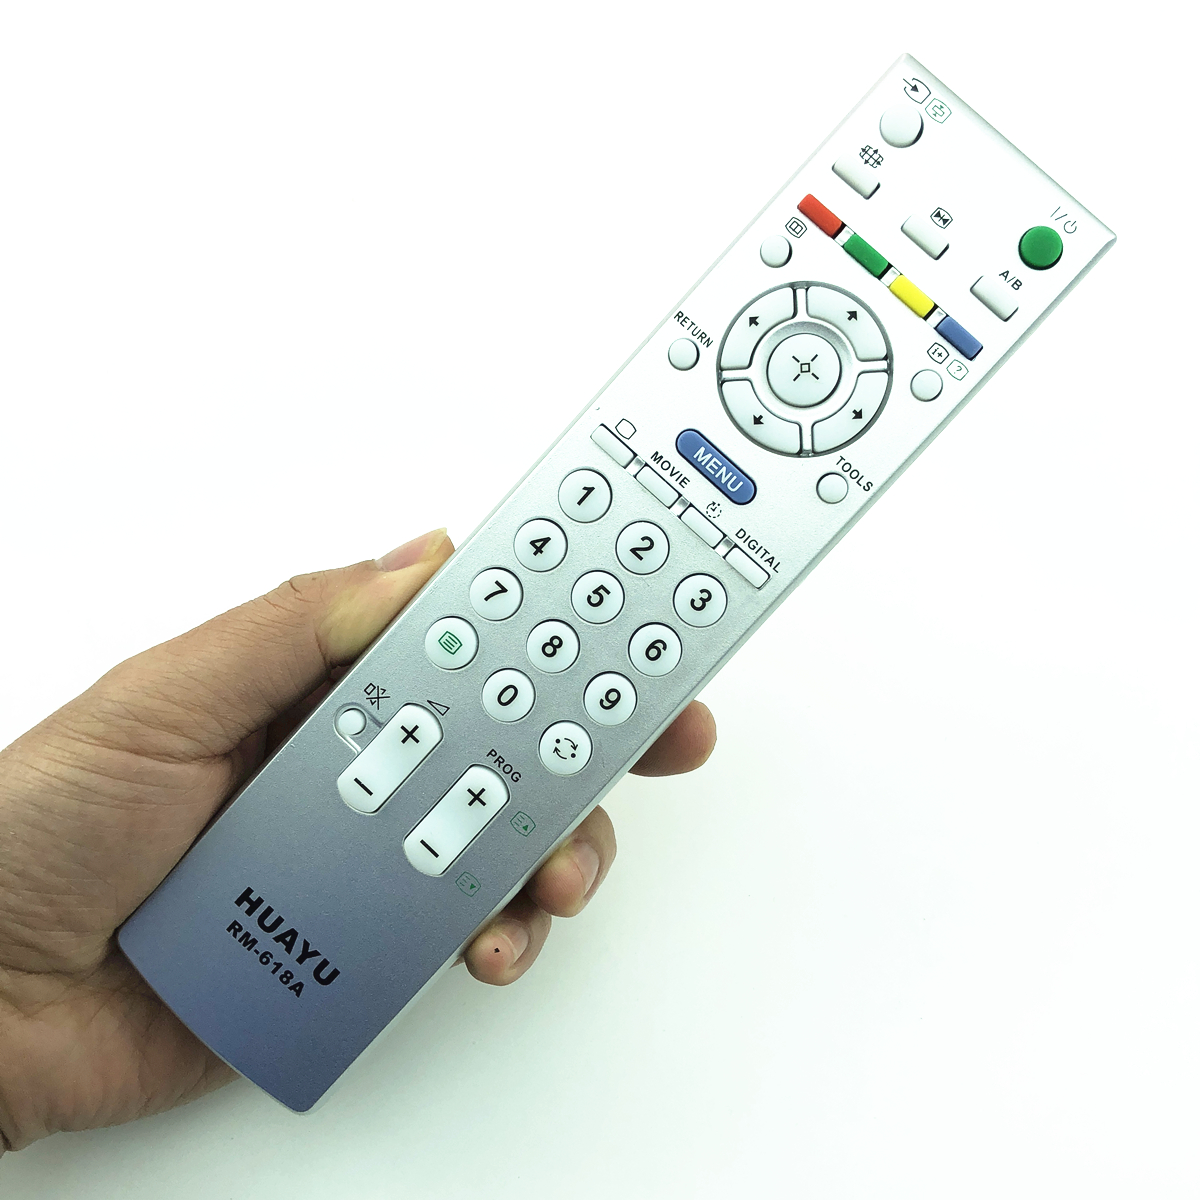 remote control suitable for Sony Bravia TV smart RM-ED005 RM-GA005 RM-W112 RM-ED014 RM-ed006 RM-ed008 RM-ED005W кабель n2xs fl 2y 1x50 rm 16